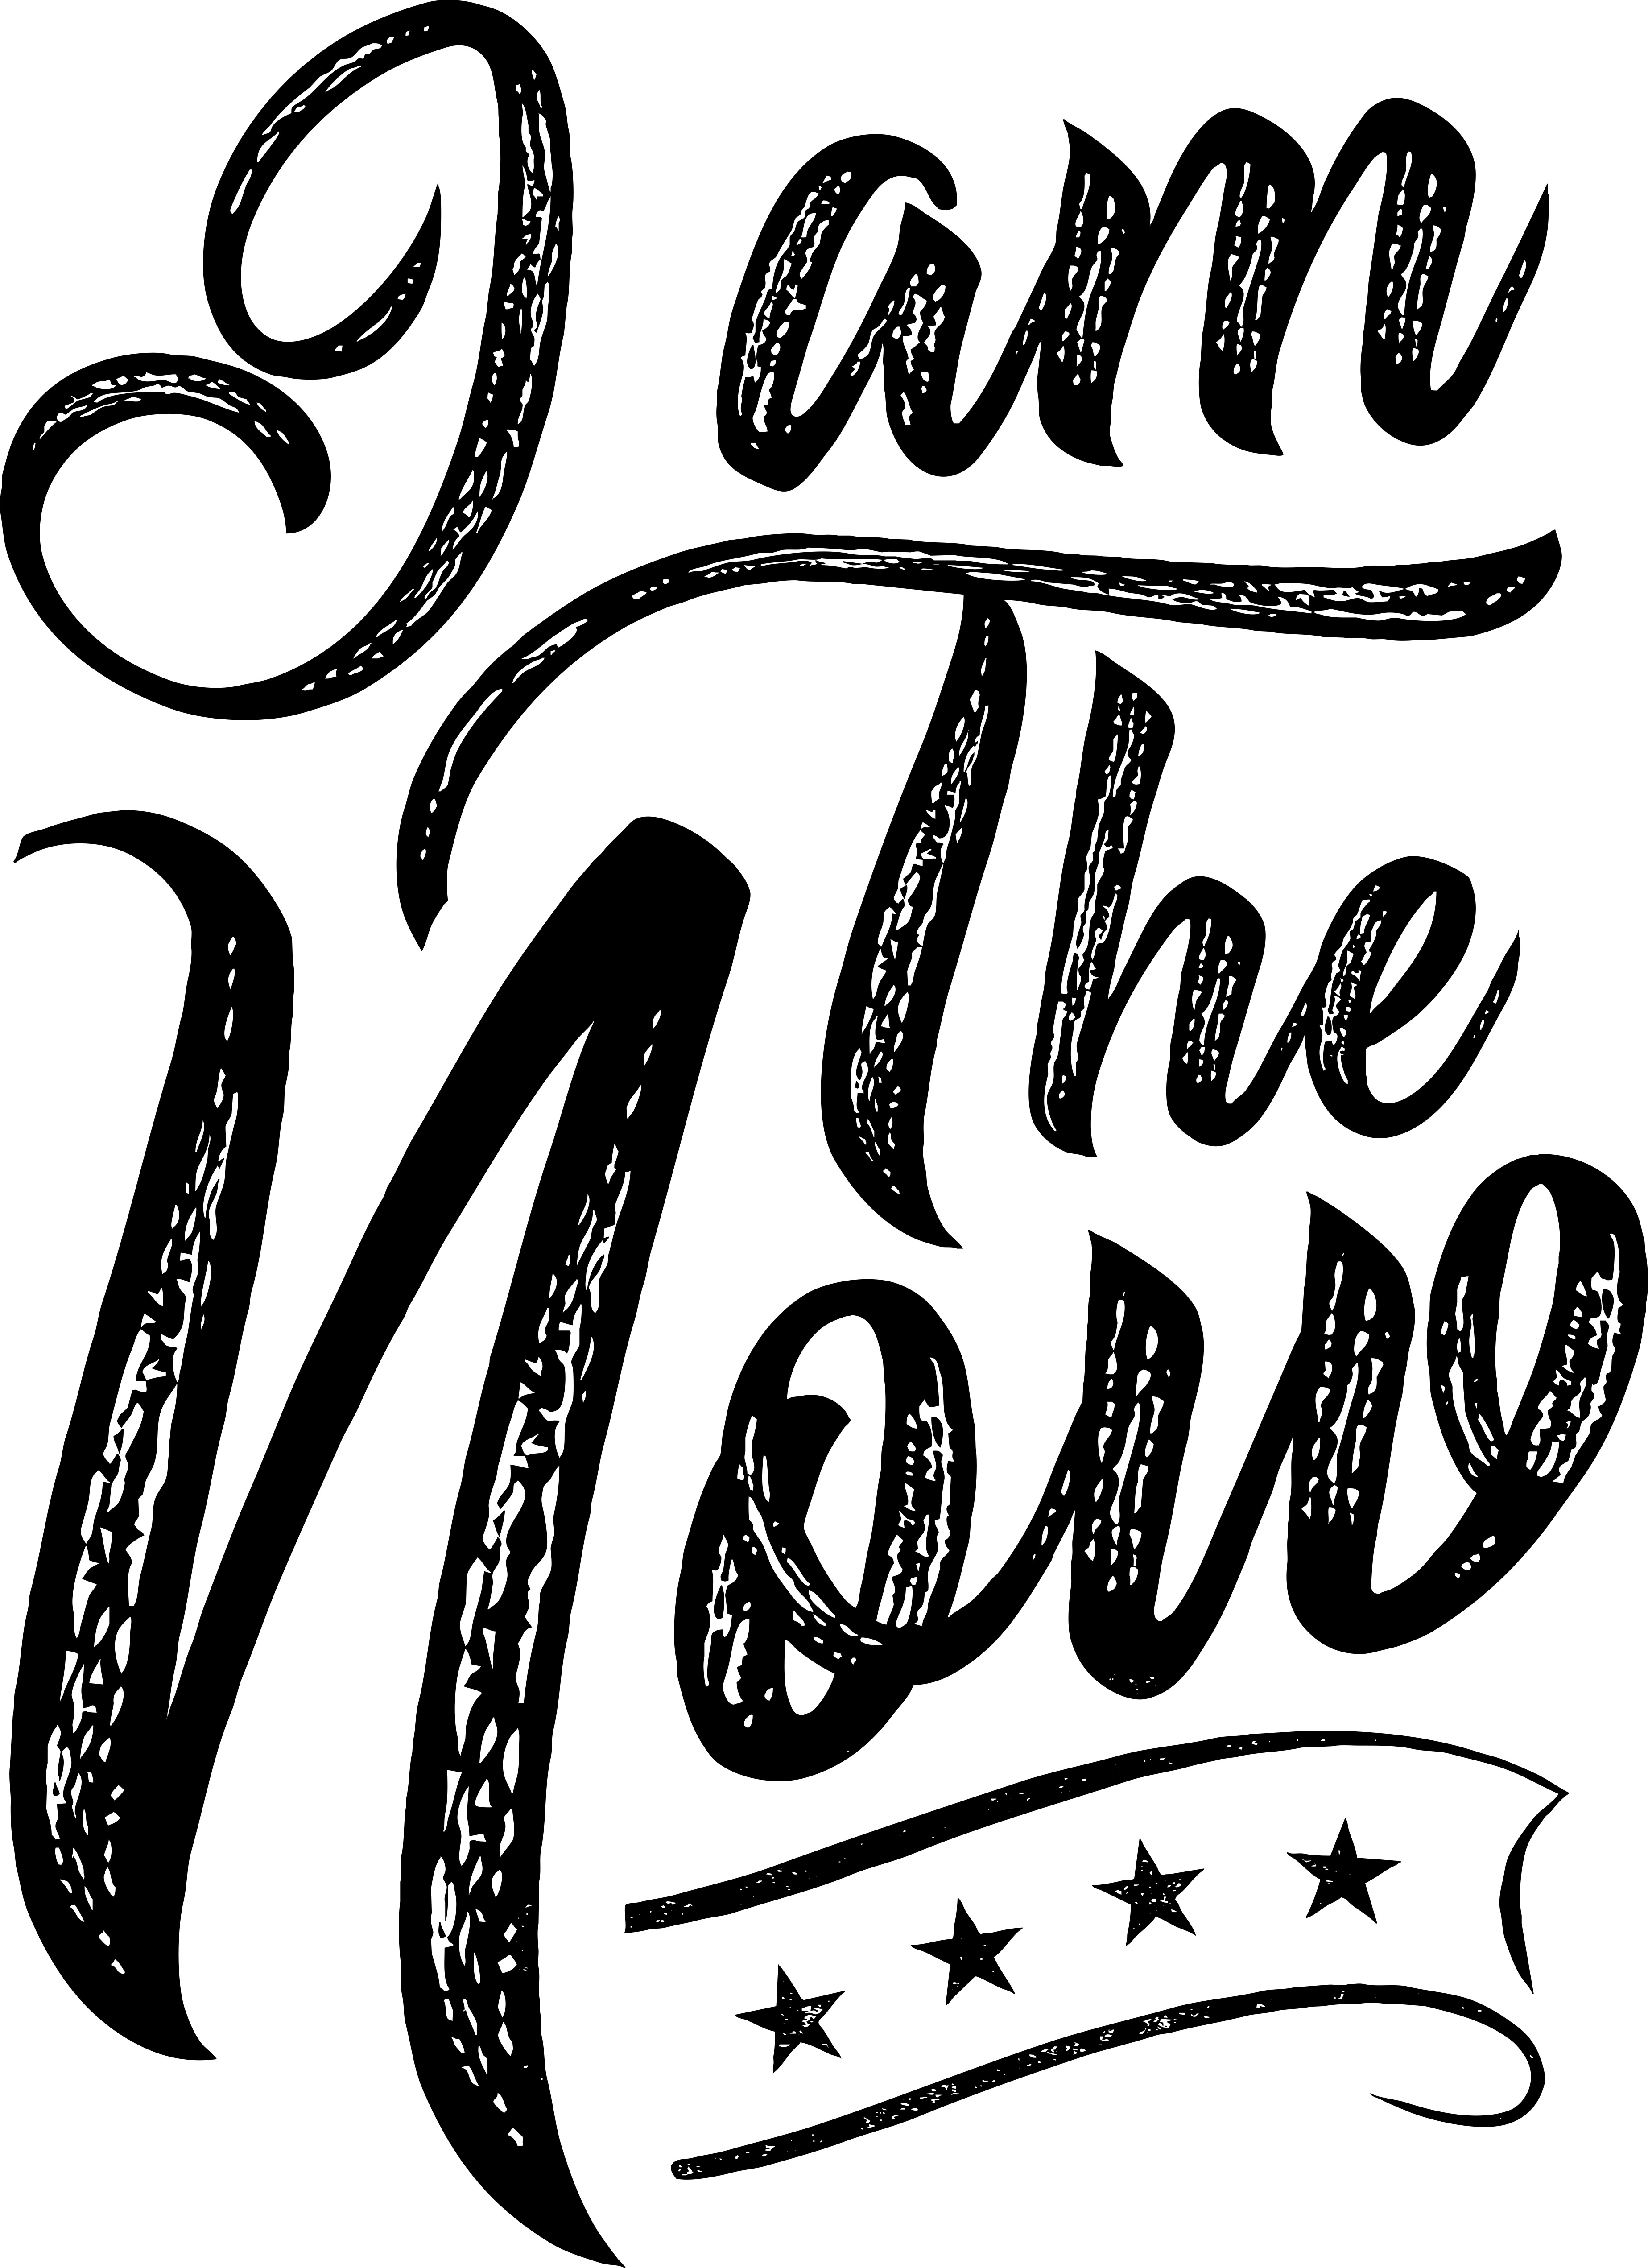 I am the now design. Collide Youth